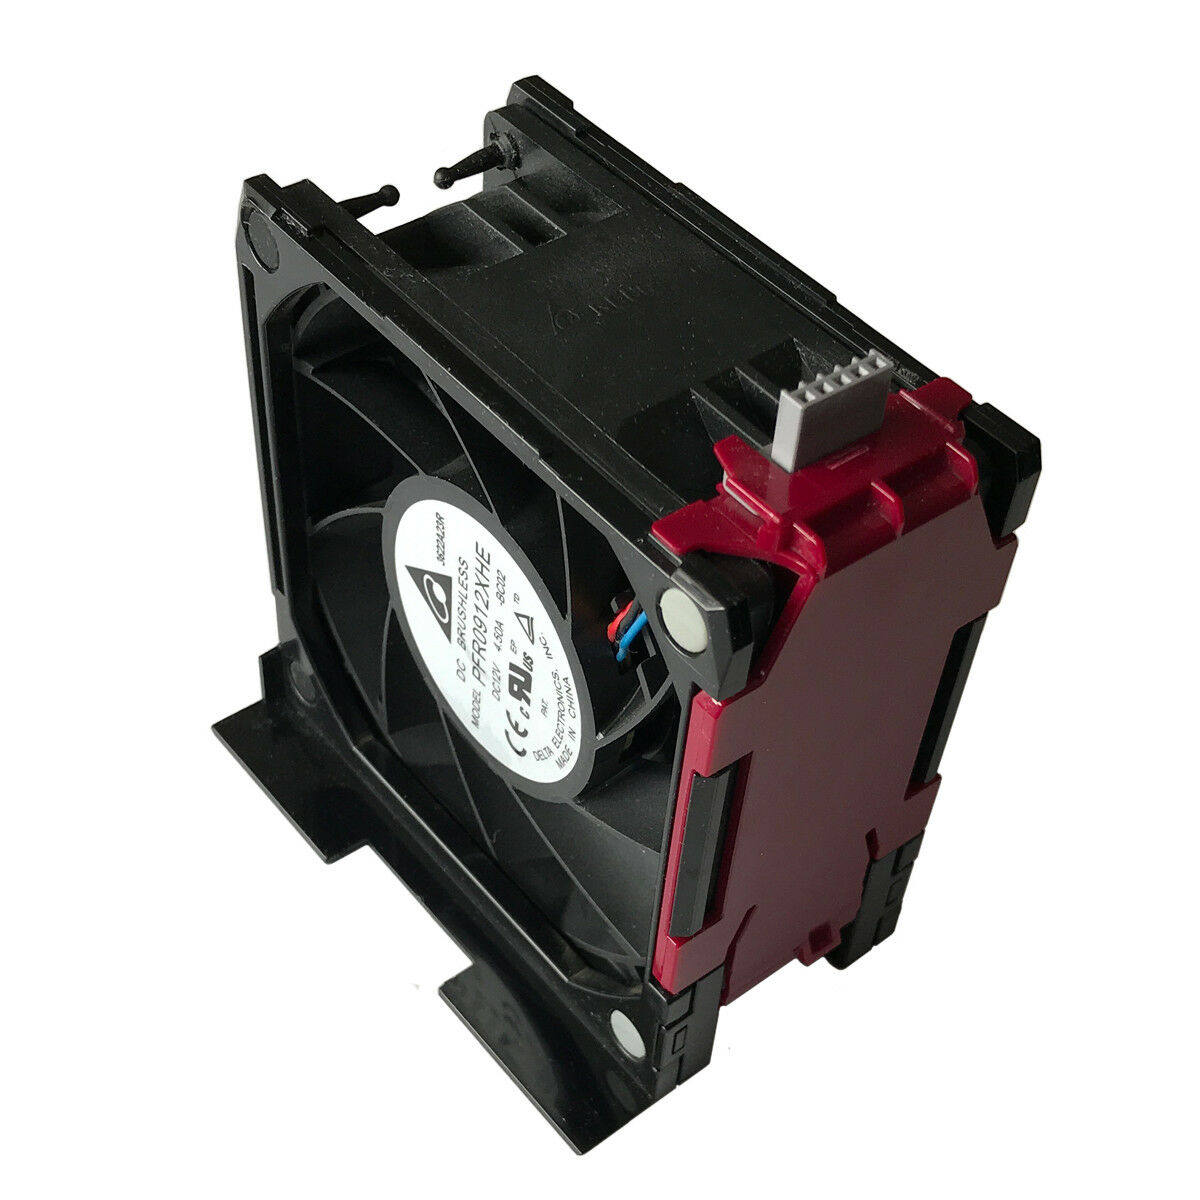 Cooling Fan for HP ML350P G8 661332-001 661332-002 667254-001